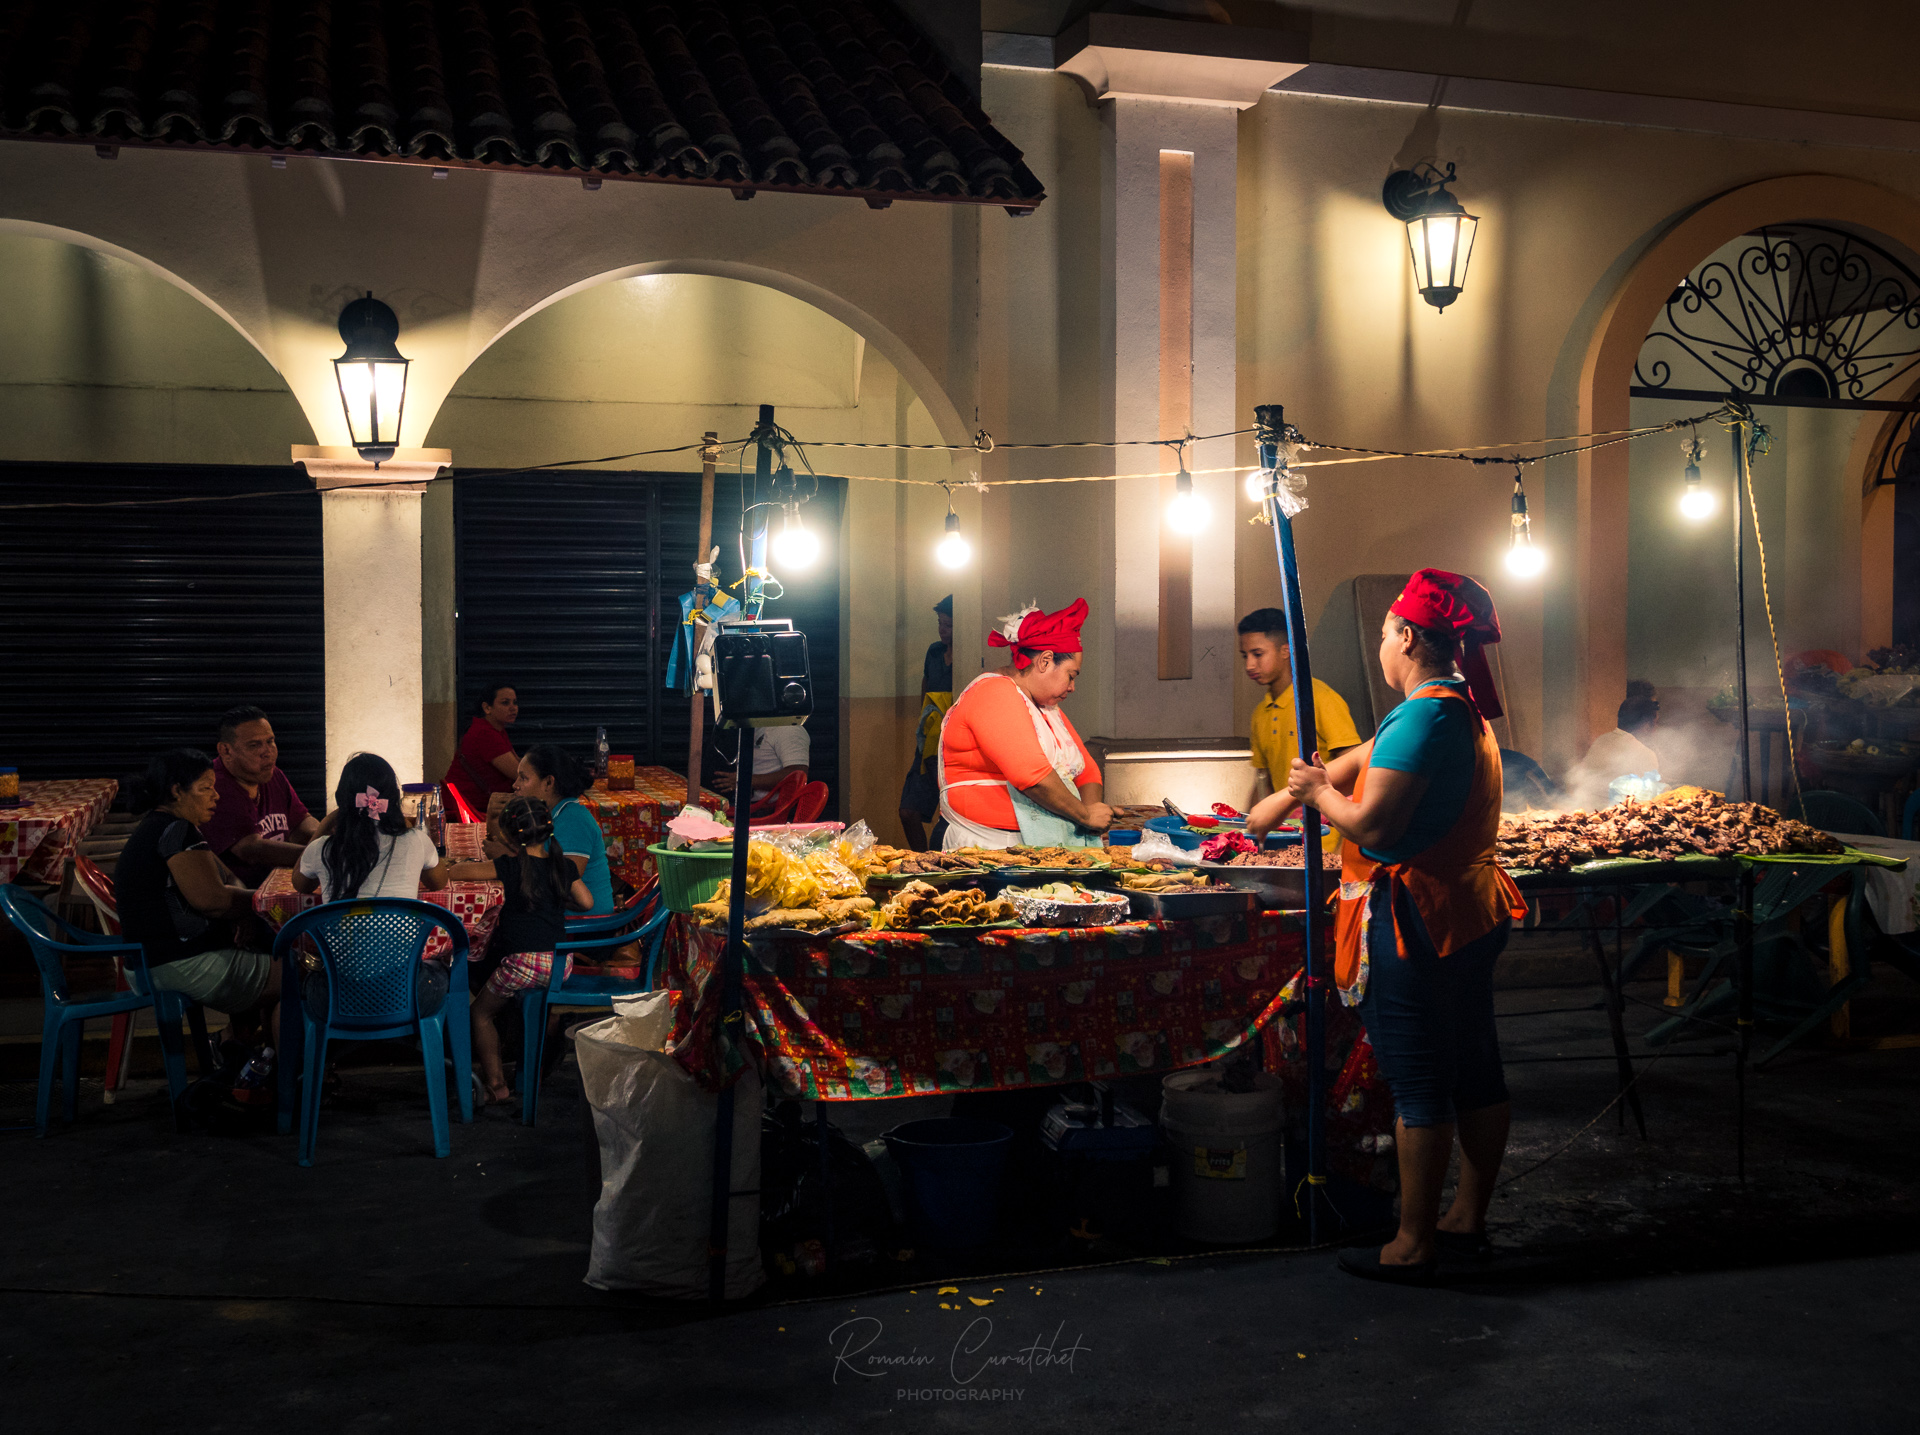 Food stall in the streets of Leon, Nicaragua © Romain Curutchet